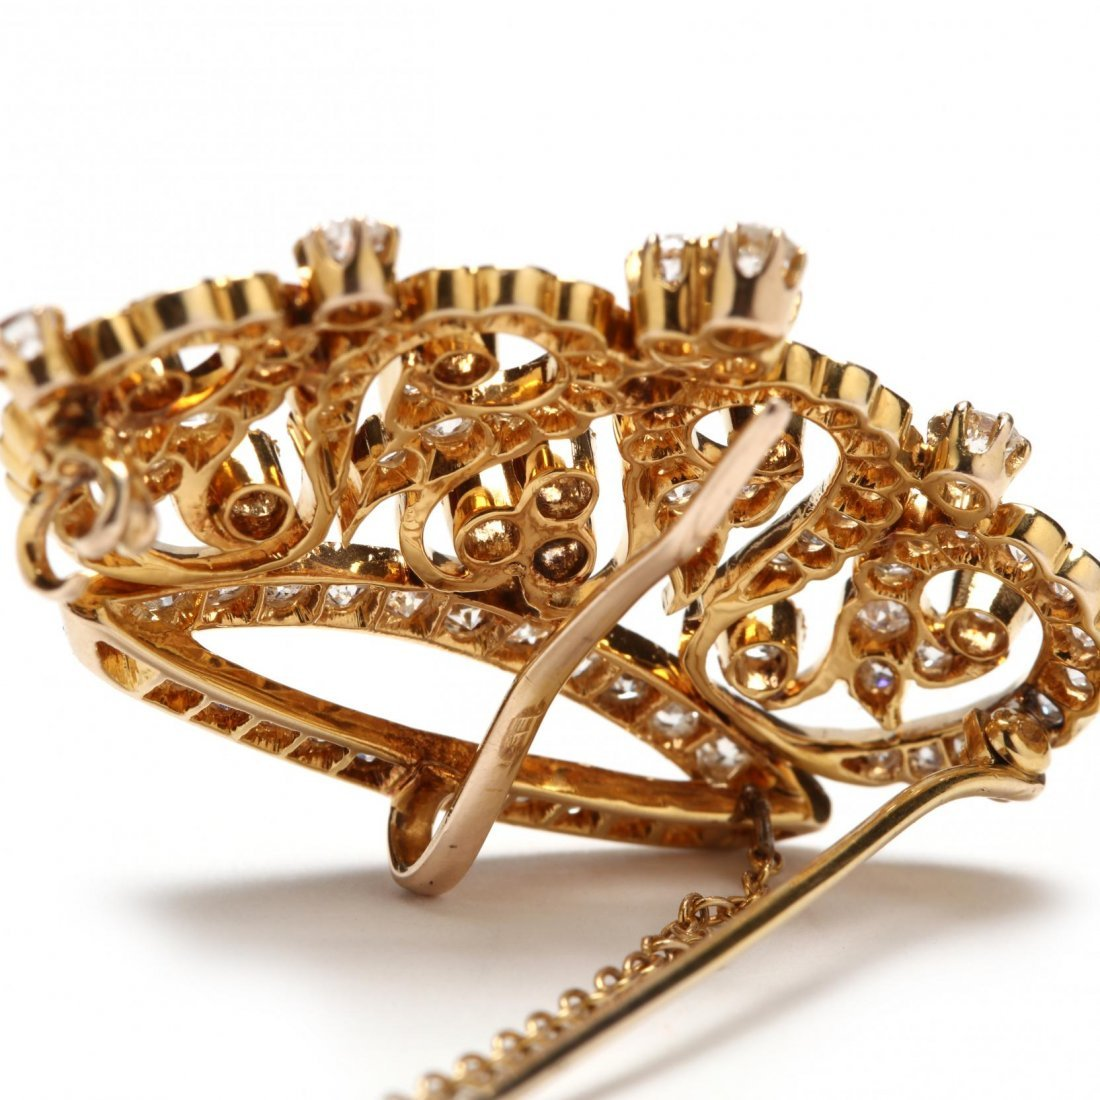 14KT Gold and Diamond Crown Brooch - 3